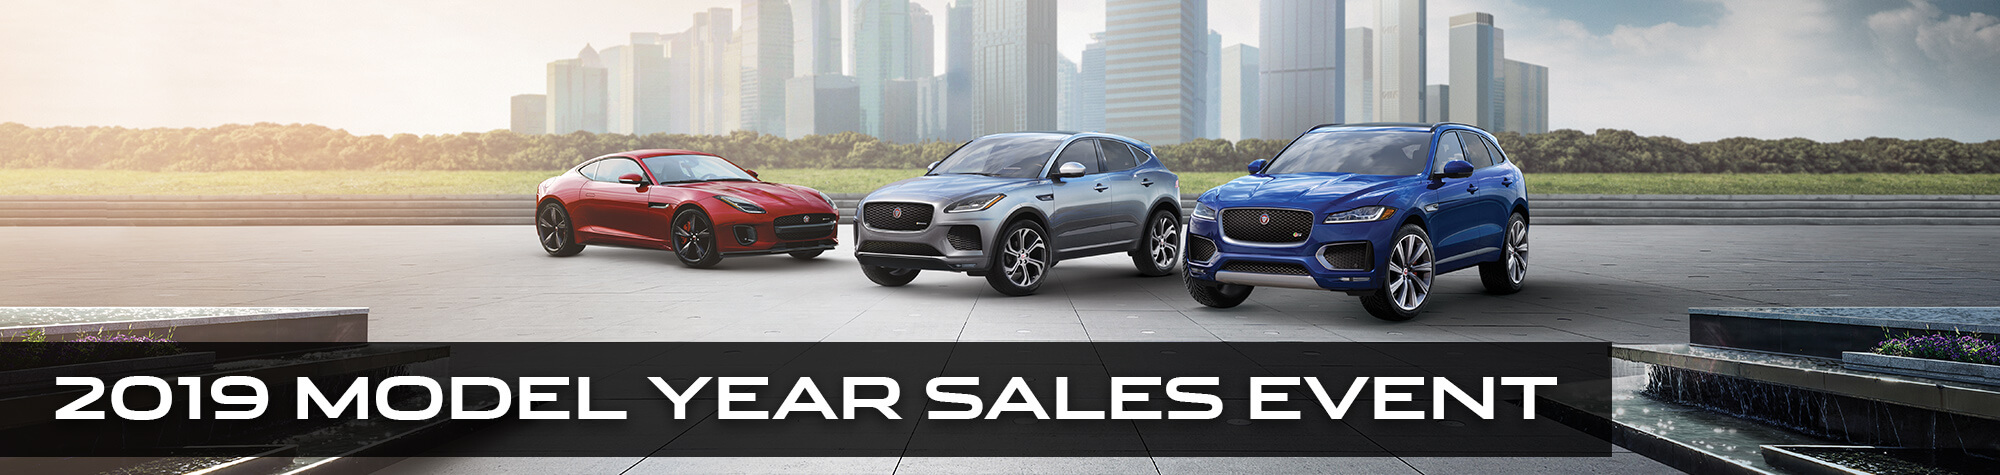 2019 Model Year Sales Event